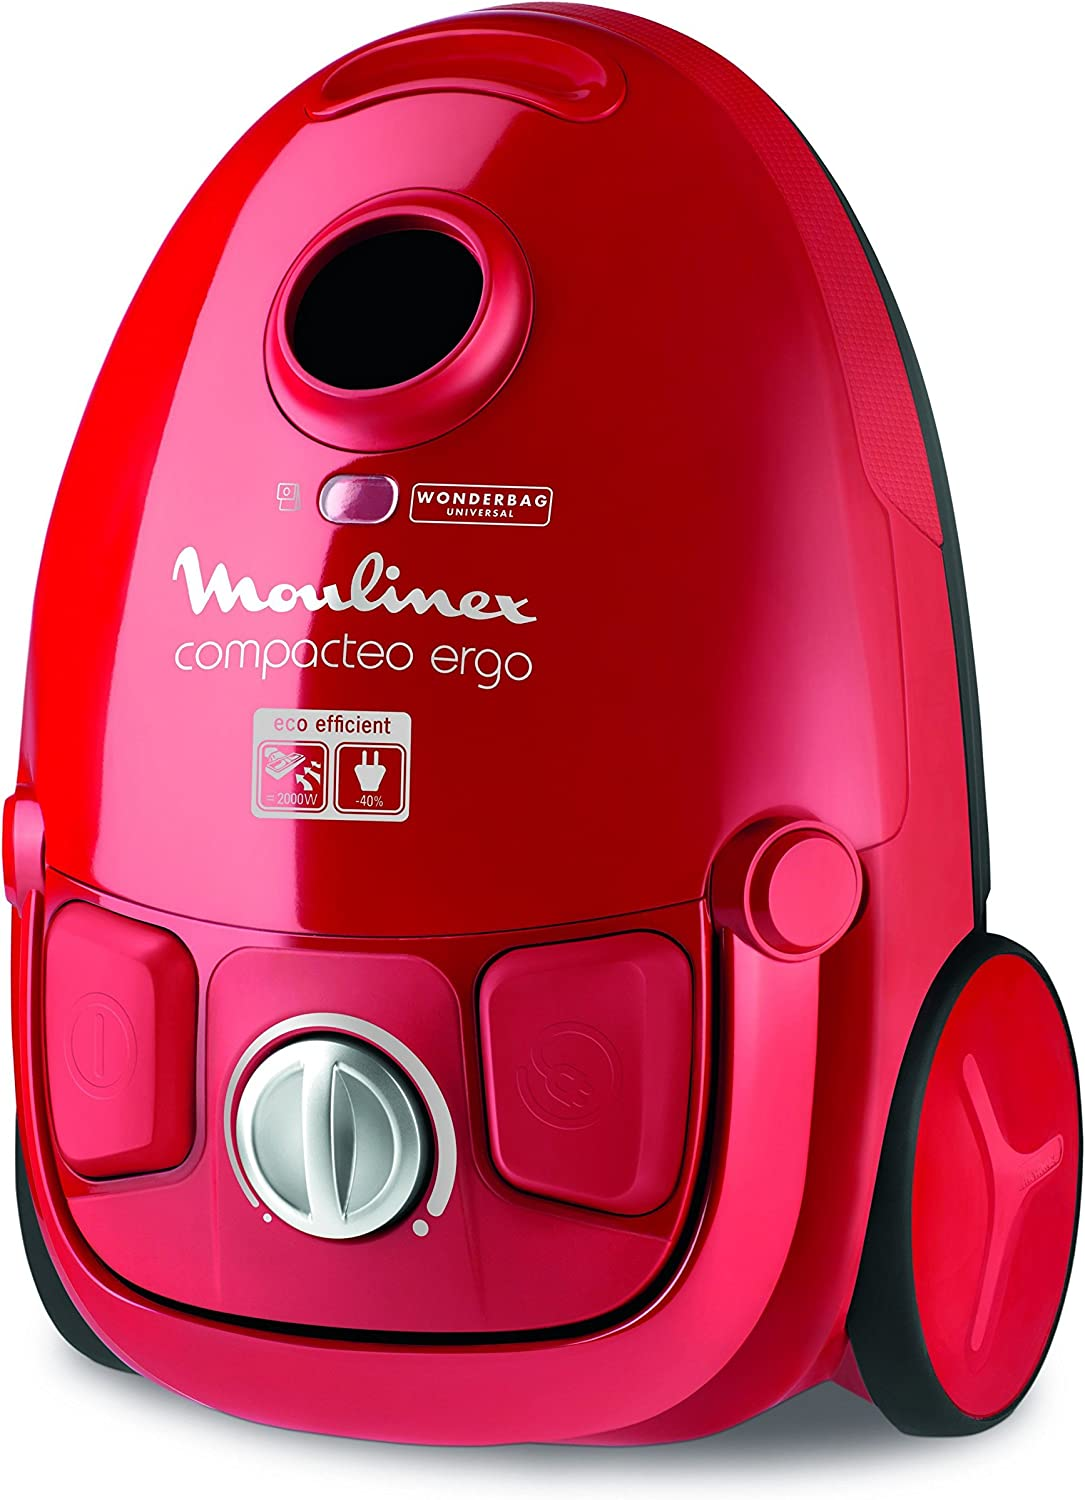 Aspiradora MOULINEX, Compacteo Ergo MO5233PA, color rojo: Amazon ...